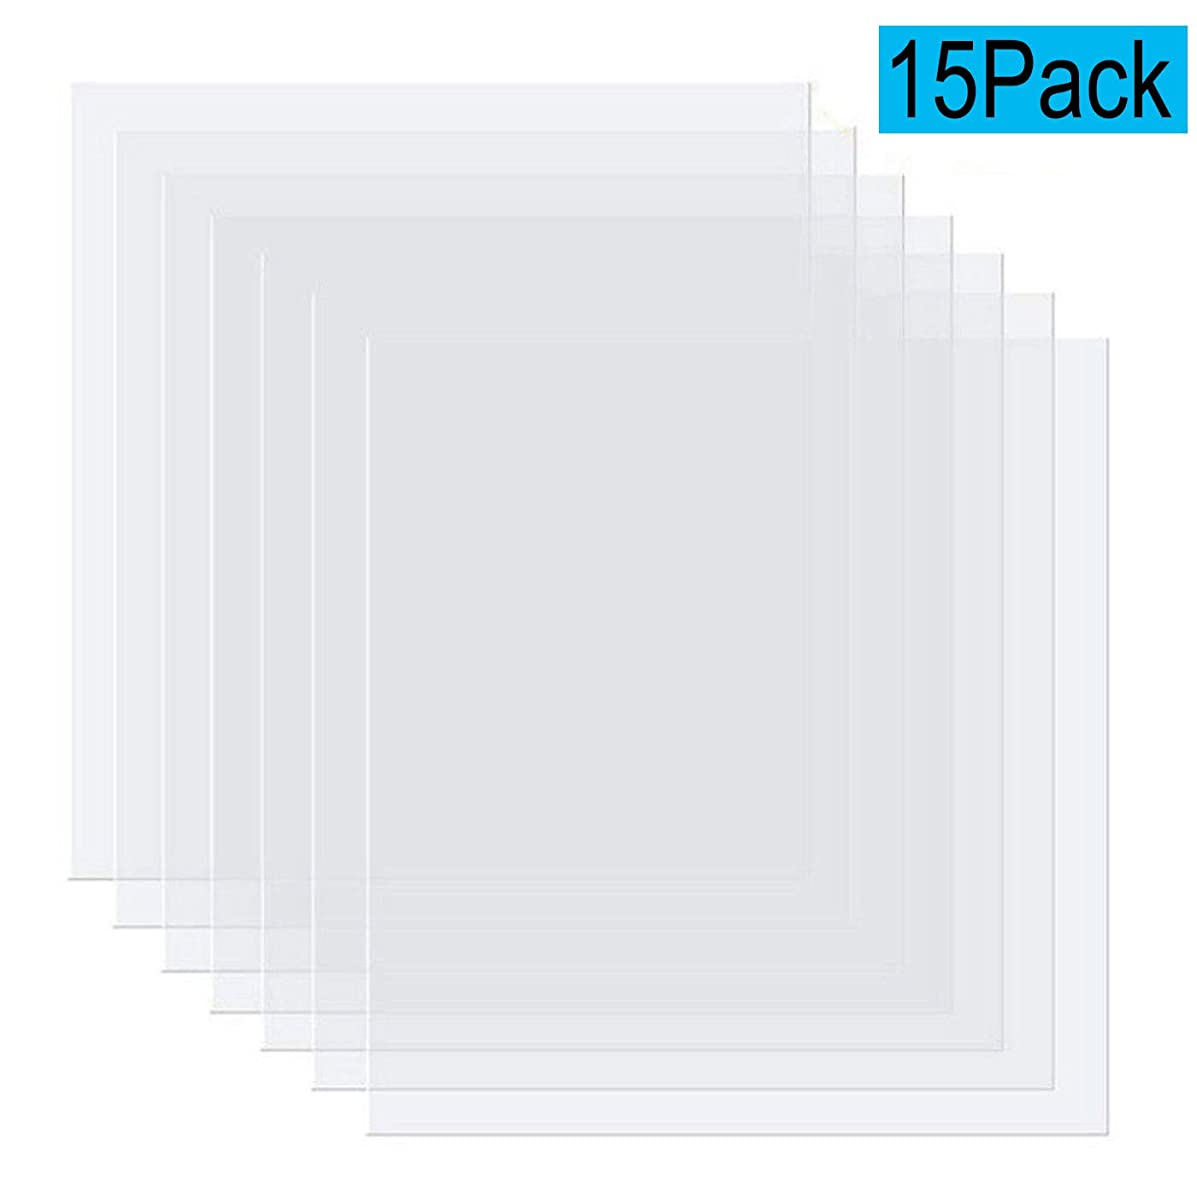 15 Pieces Blank Stencil Material Mylar Template Sheets for Stencils, 12 x 12 inches 0.1mm Thickness